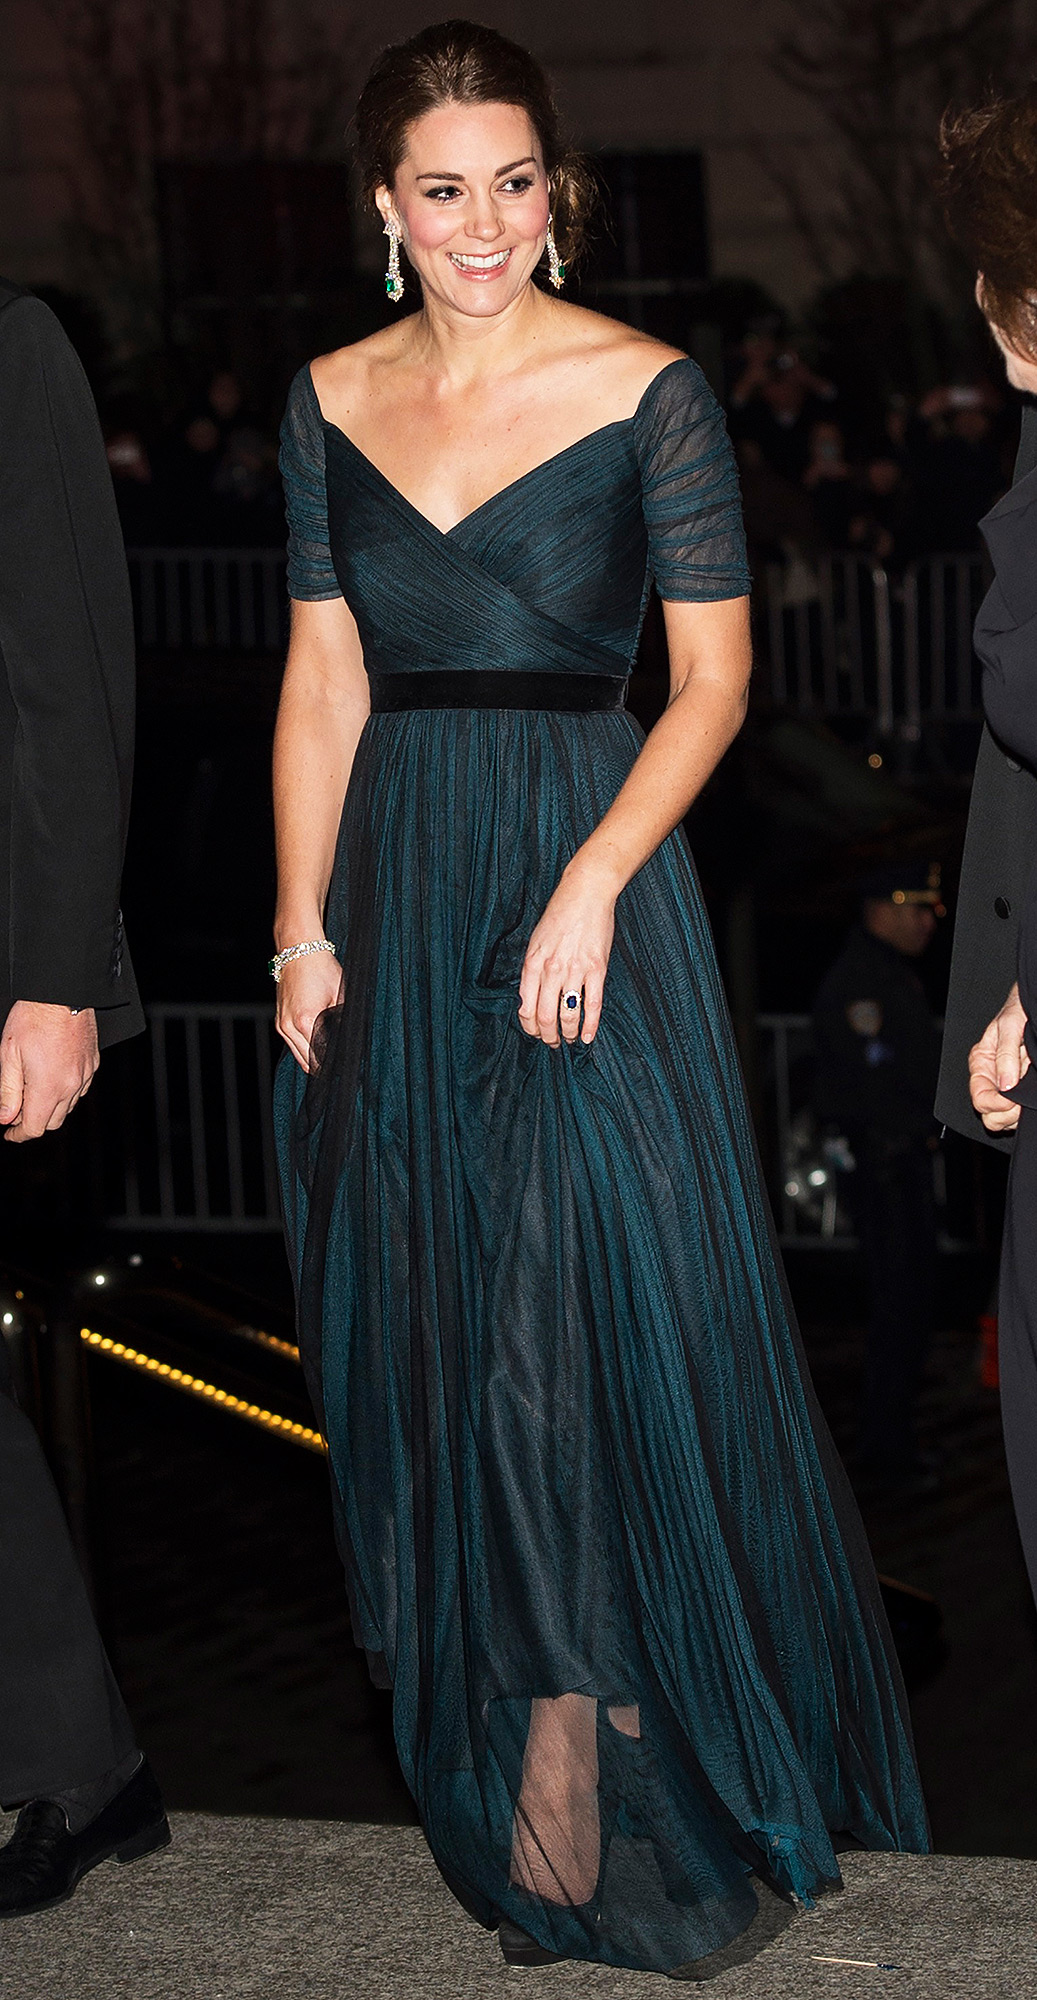 The Duke and Duchess of Cambridge attend the St. Andrews 600th Anniversary Dinner